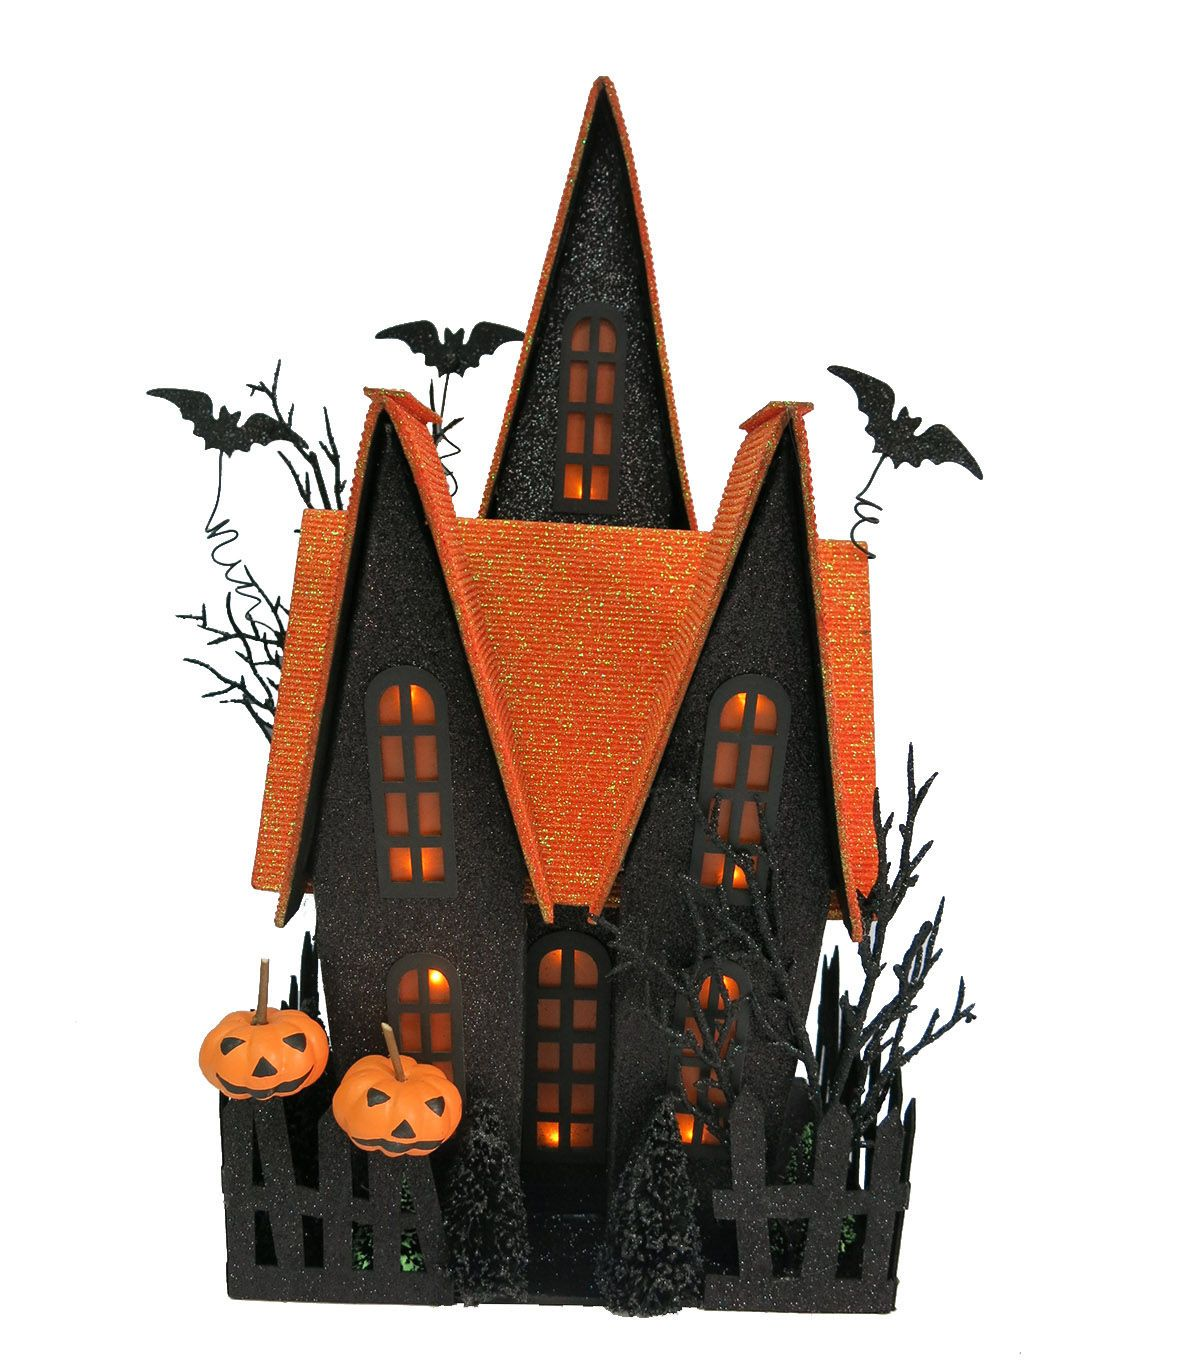 Ring in Halloween this season with eye-catching home decor accents - halloween houses decorated